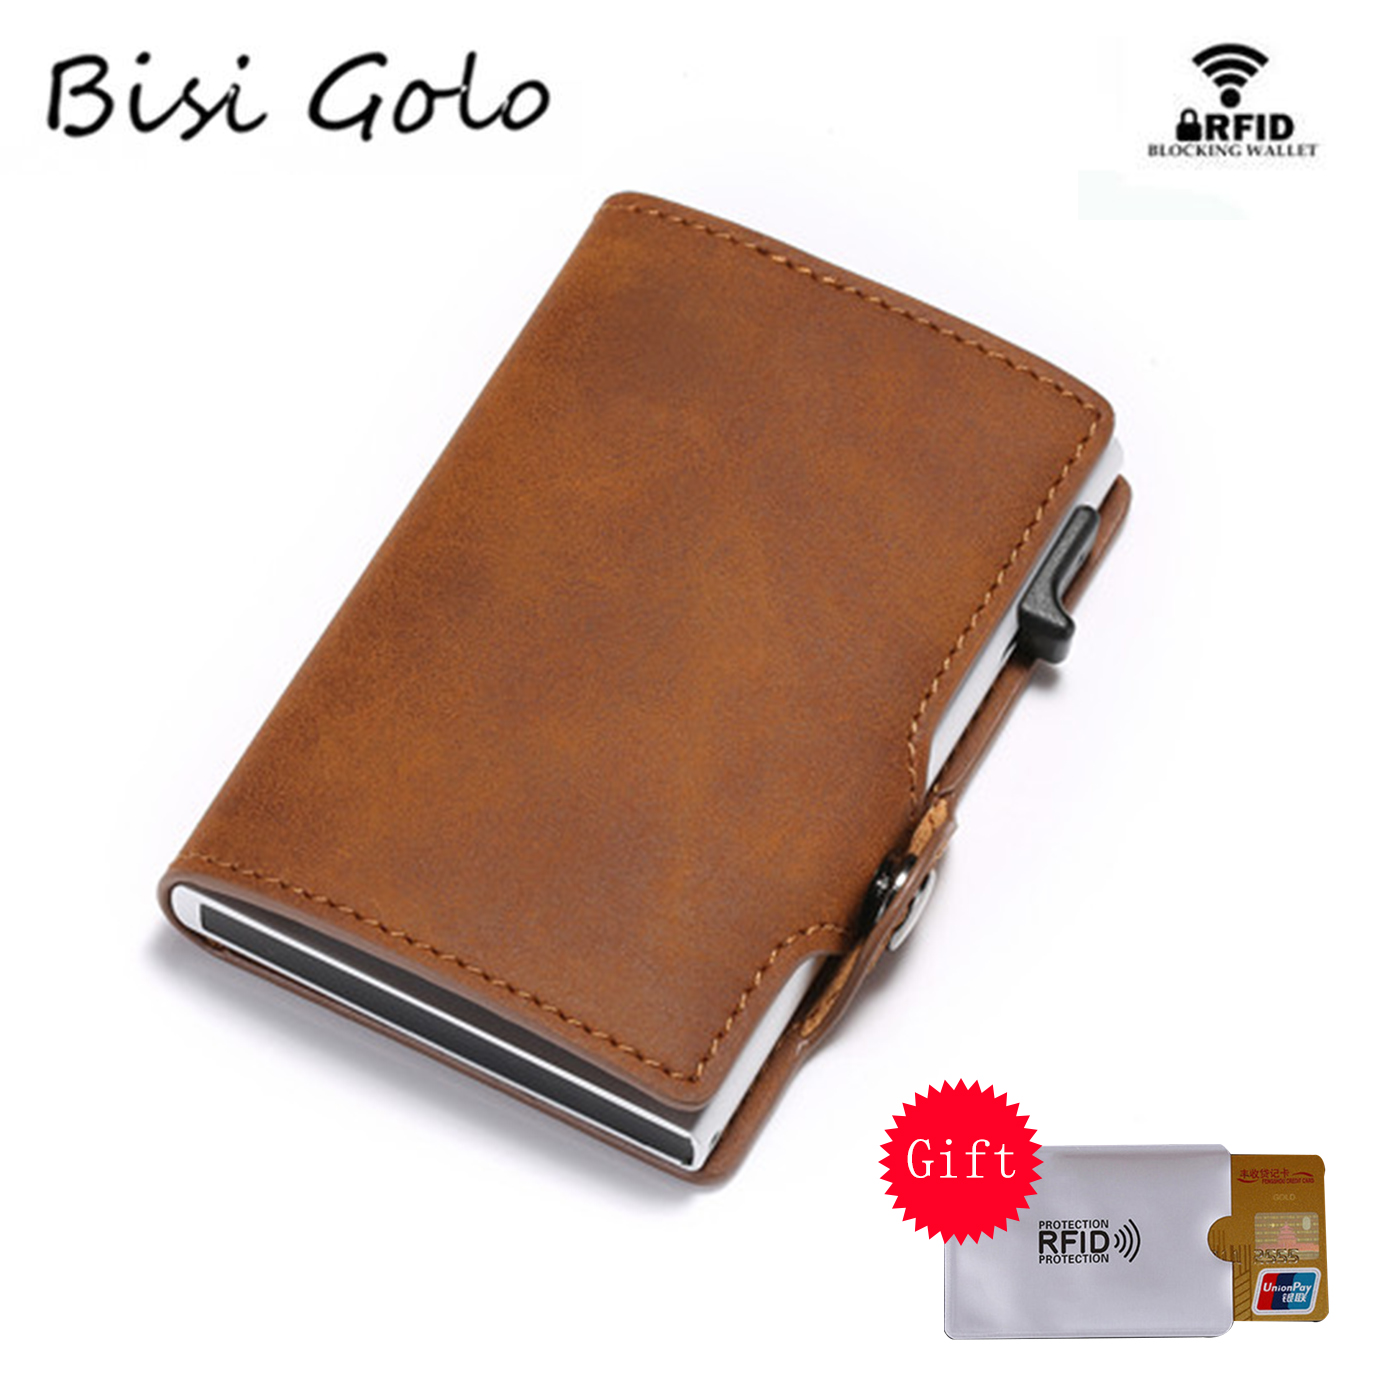 Fashion Wallet Suitcase Vintage-Card-Holder Luxury-Card-Case Anti-Theft-Card RFID Bisi Goro